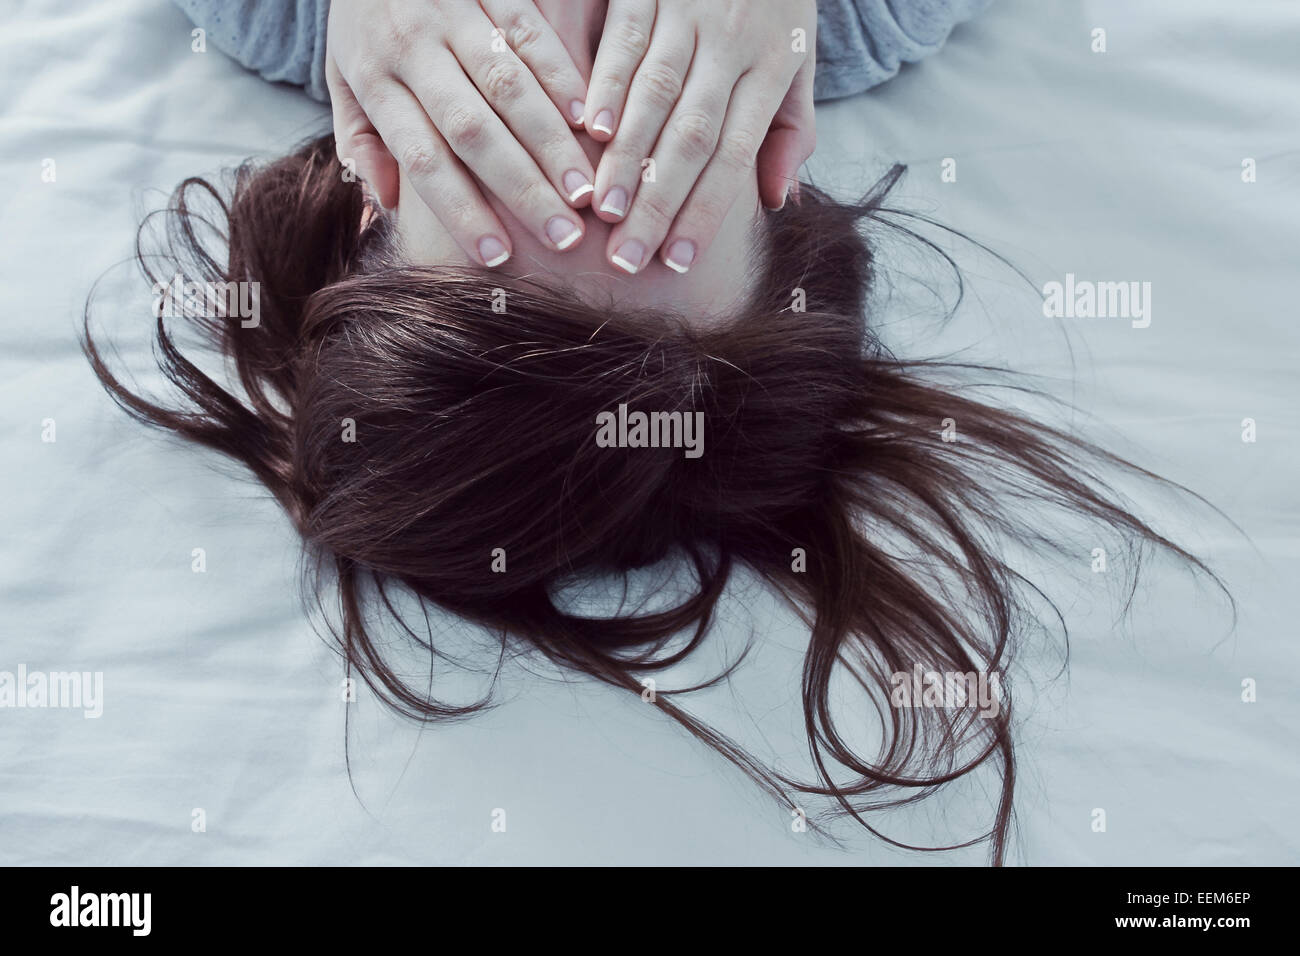 Woman lying on bed covering her eyes with hands - Stock Image